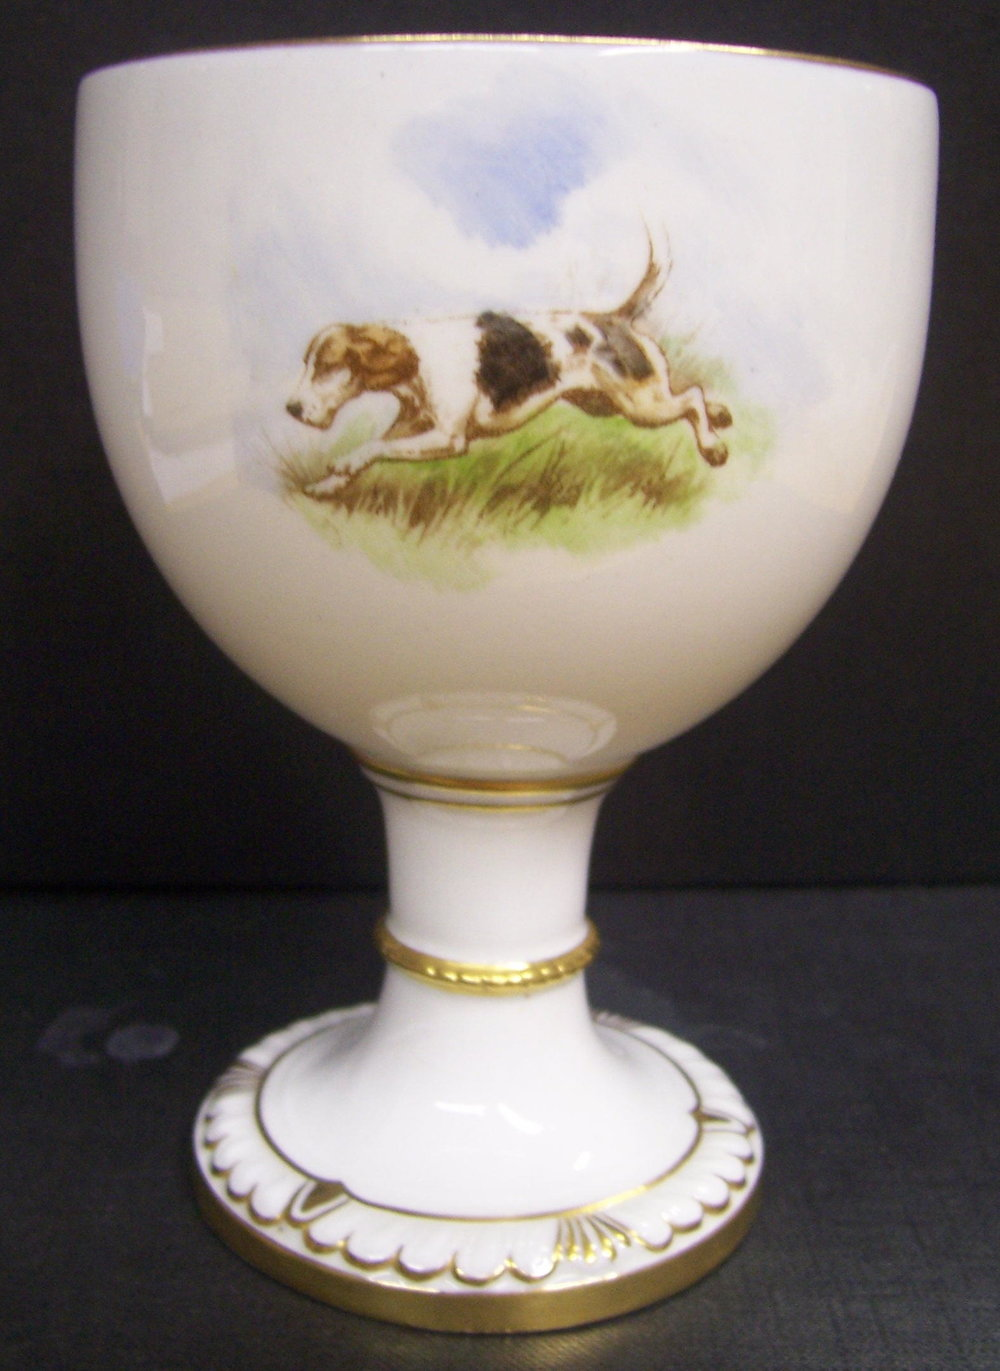 royal-crown-derby-goblet-1942-shape-hunting-scene-reverse